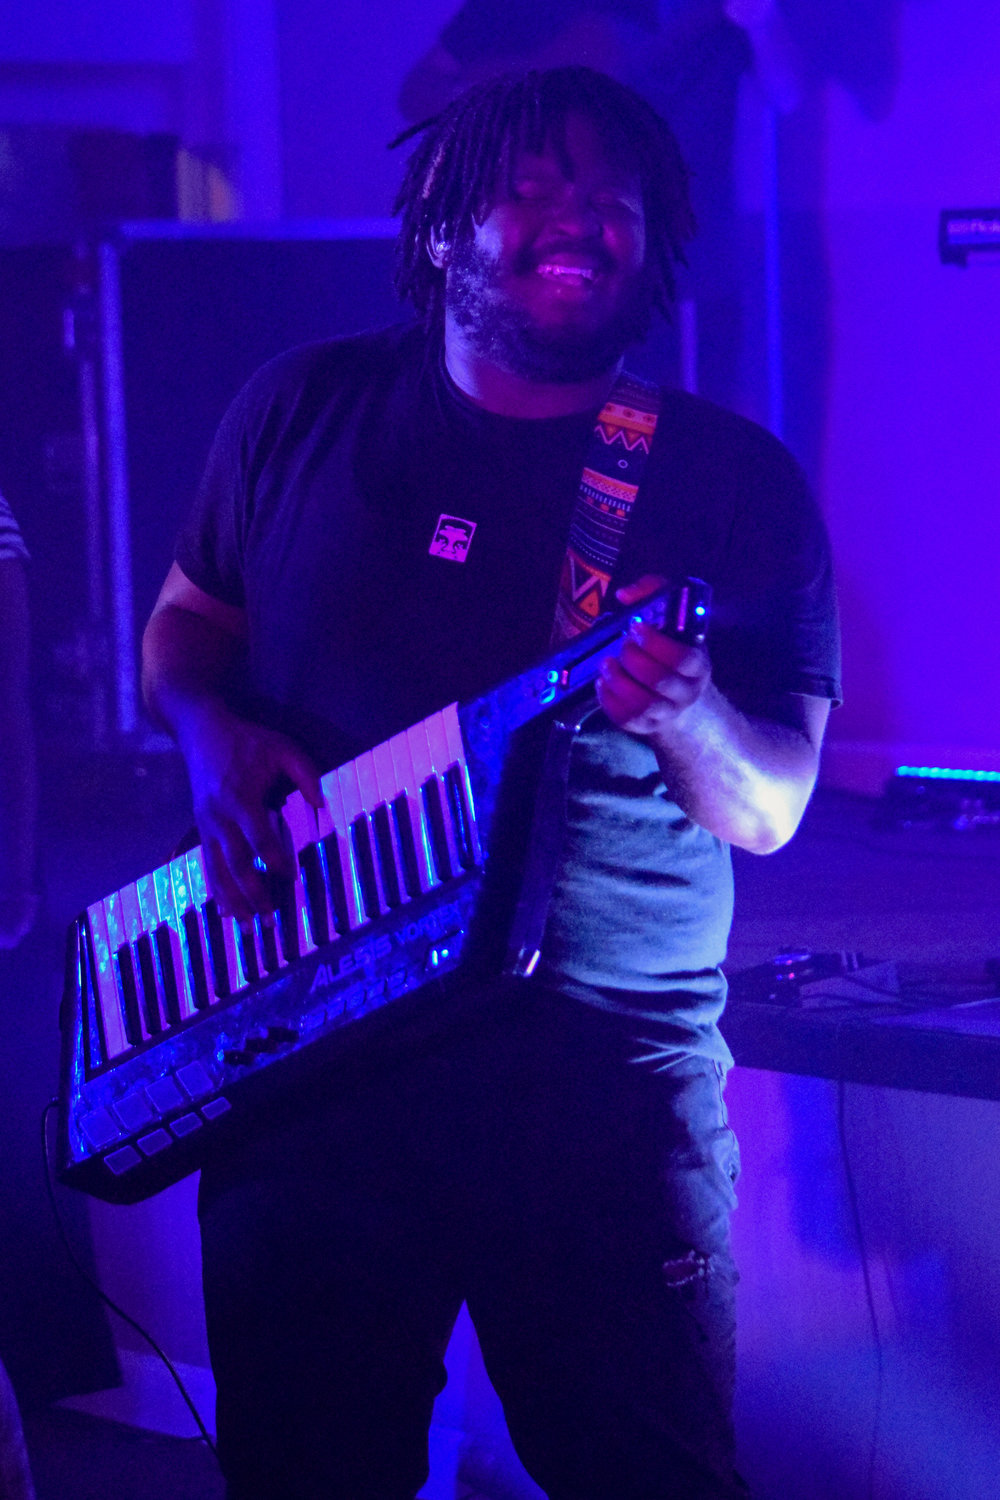 Perdue rocks it out on the keytar during the service.